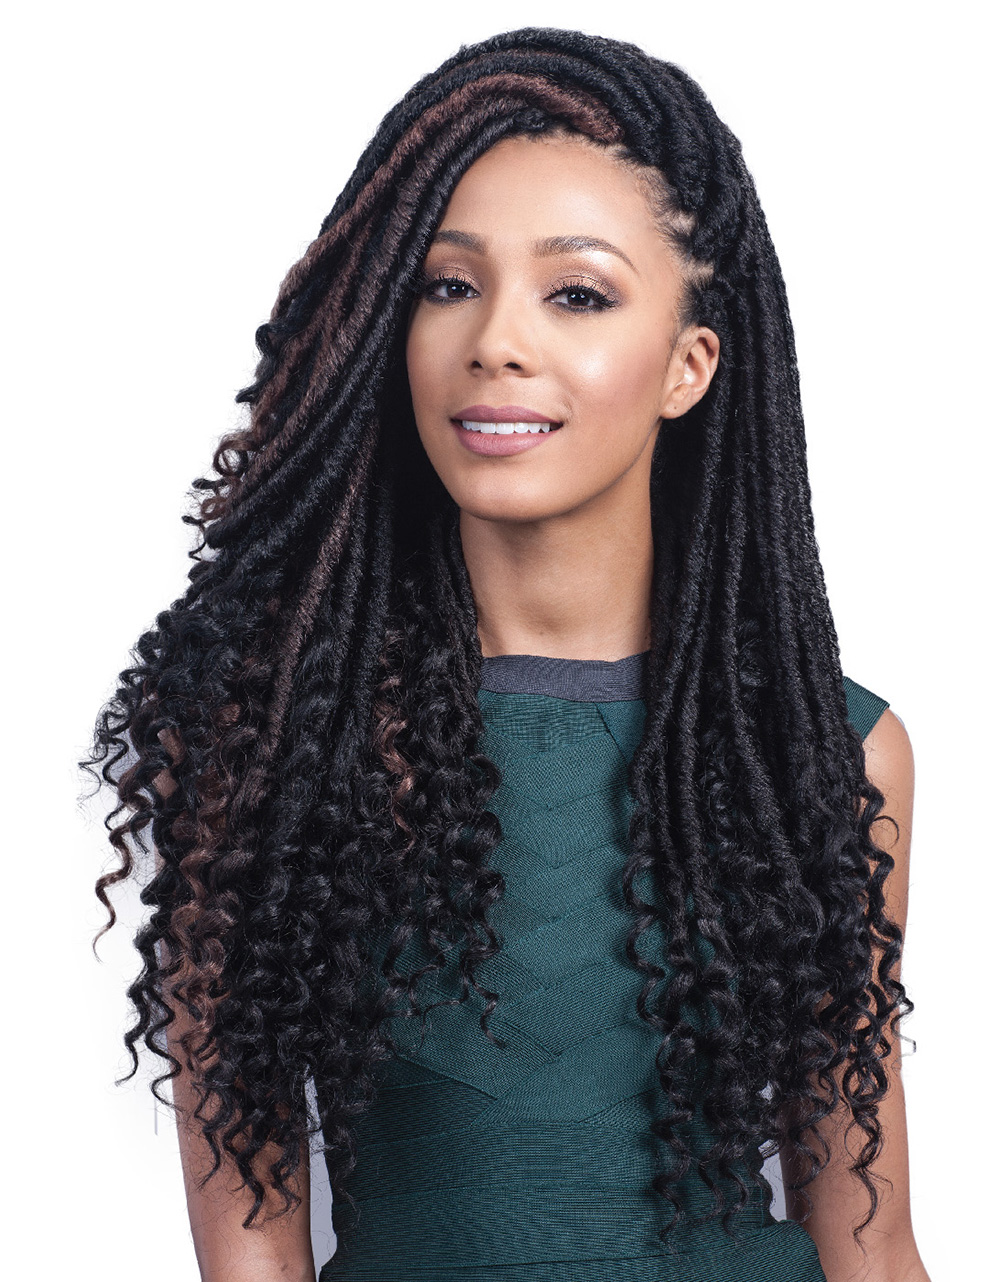 Bobbi Boss Bomba Faux Locs Soul Curly Tips 20